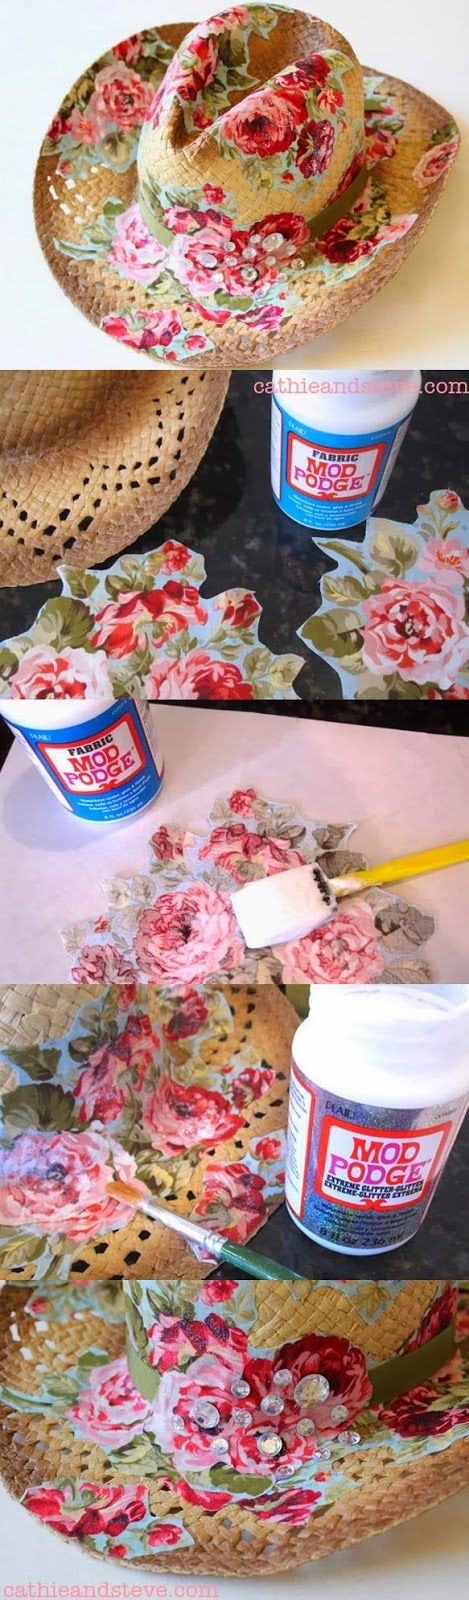 Decoupage a straw hat with Mod Podge - fab!: